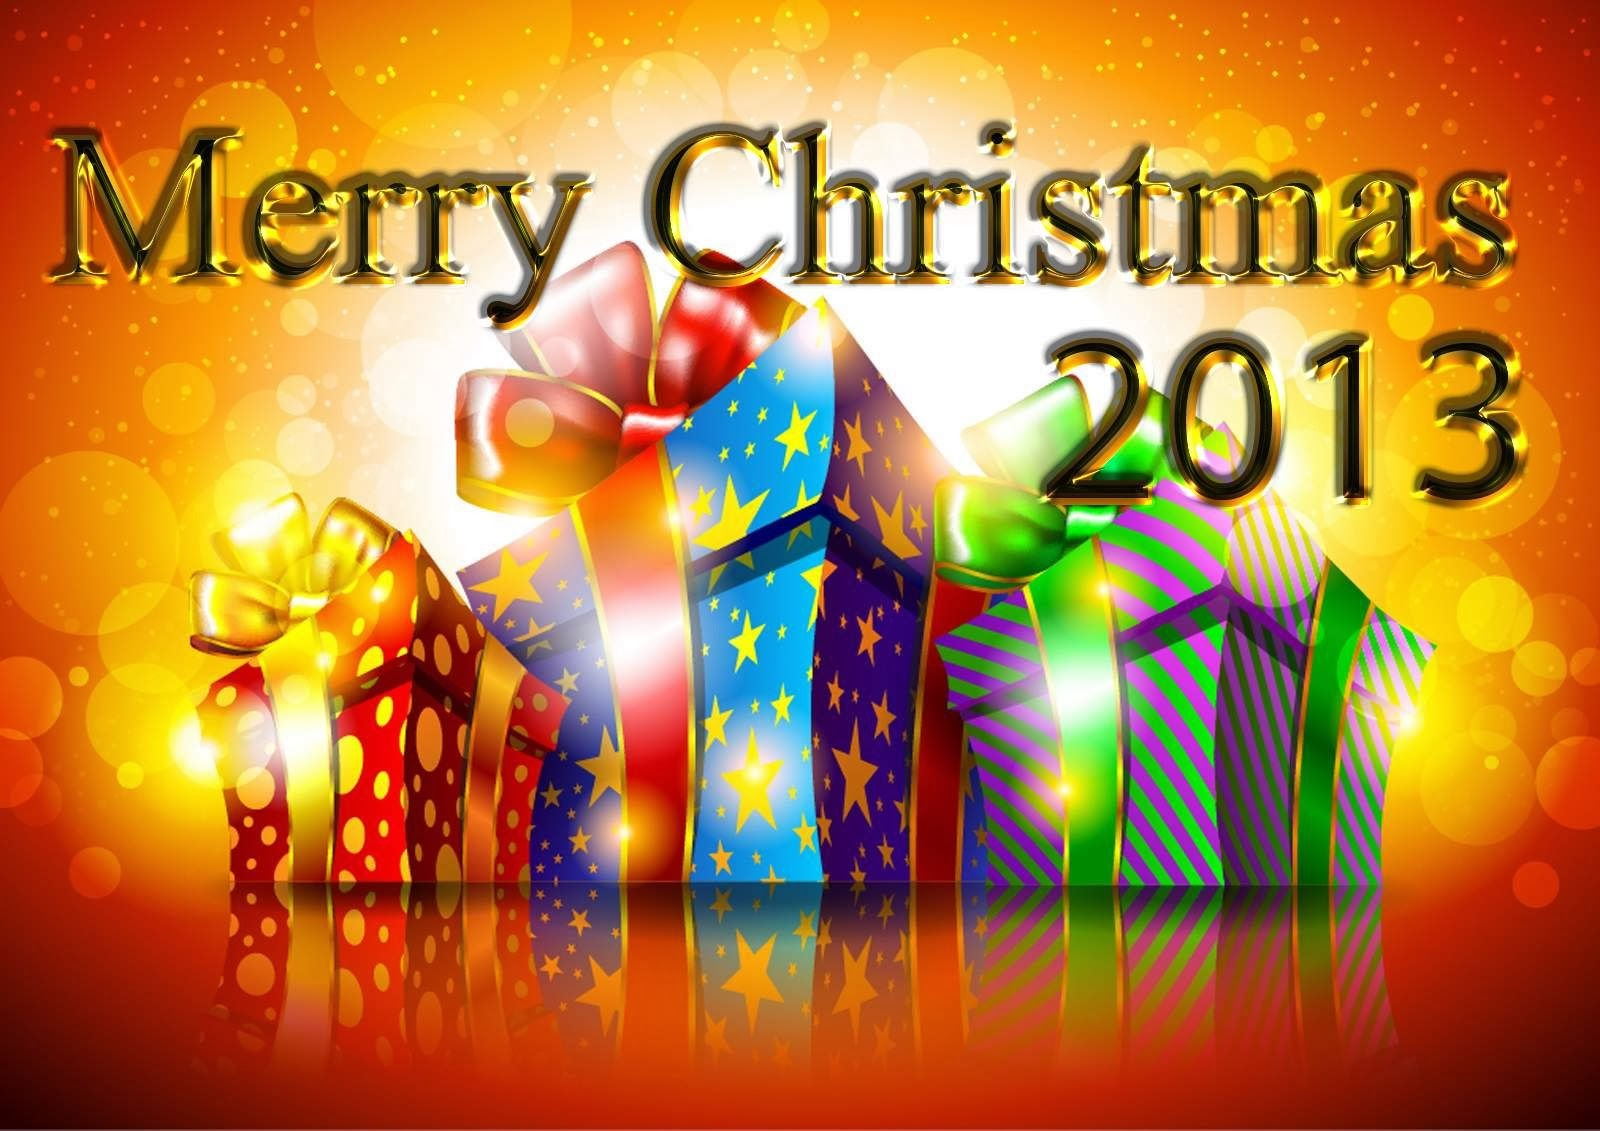 merry christmas wallpapers in hd 2013